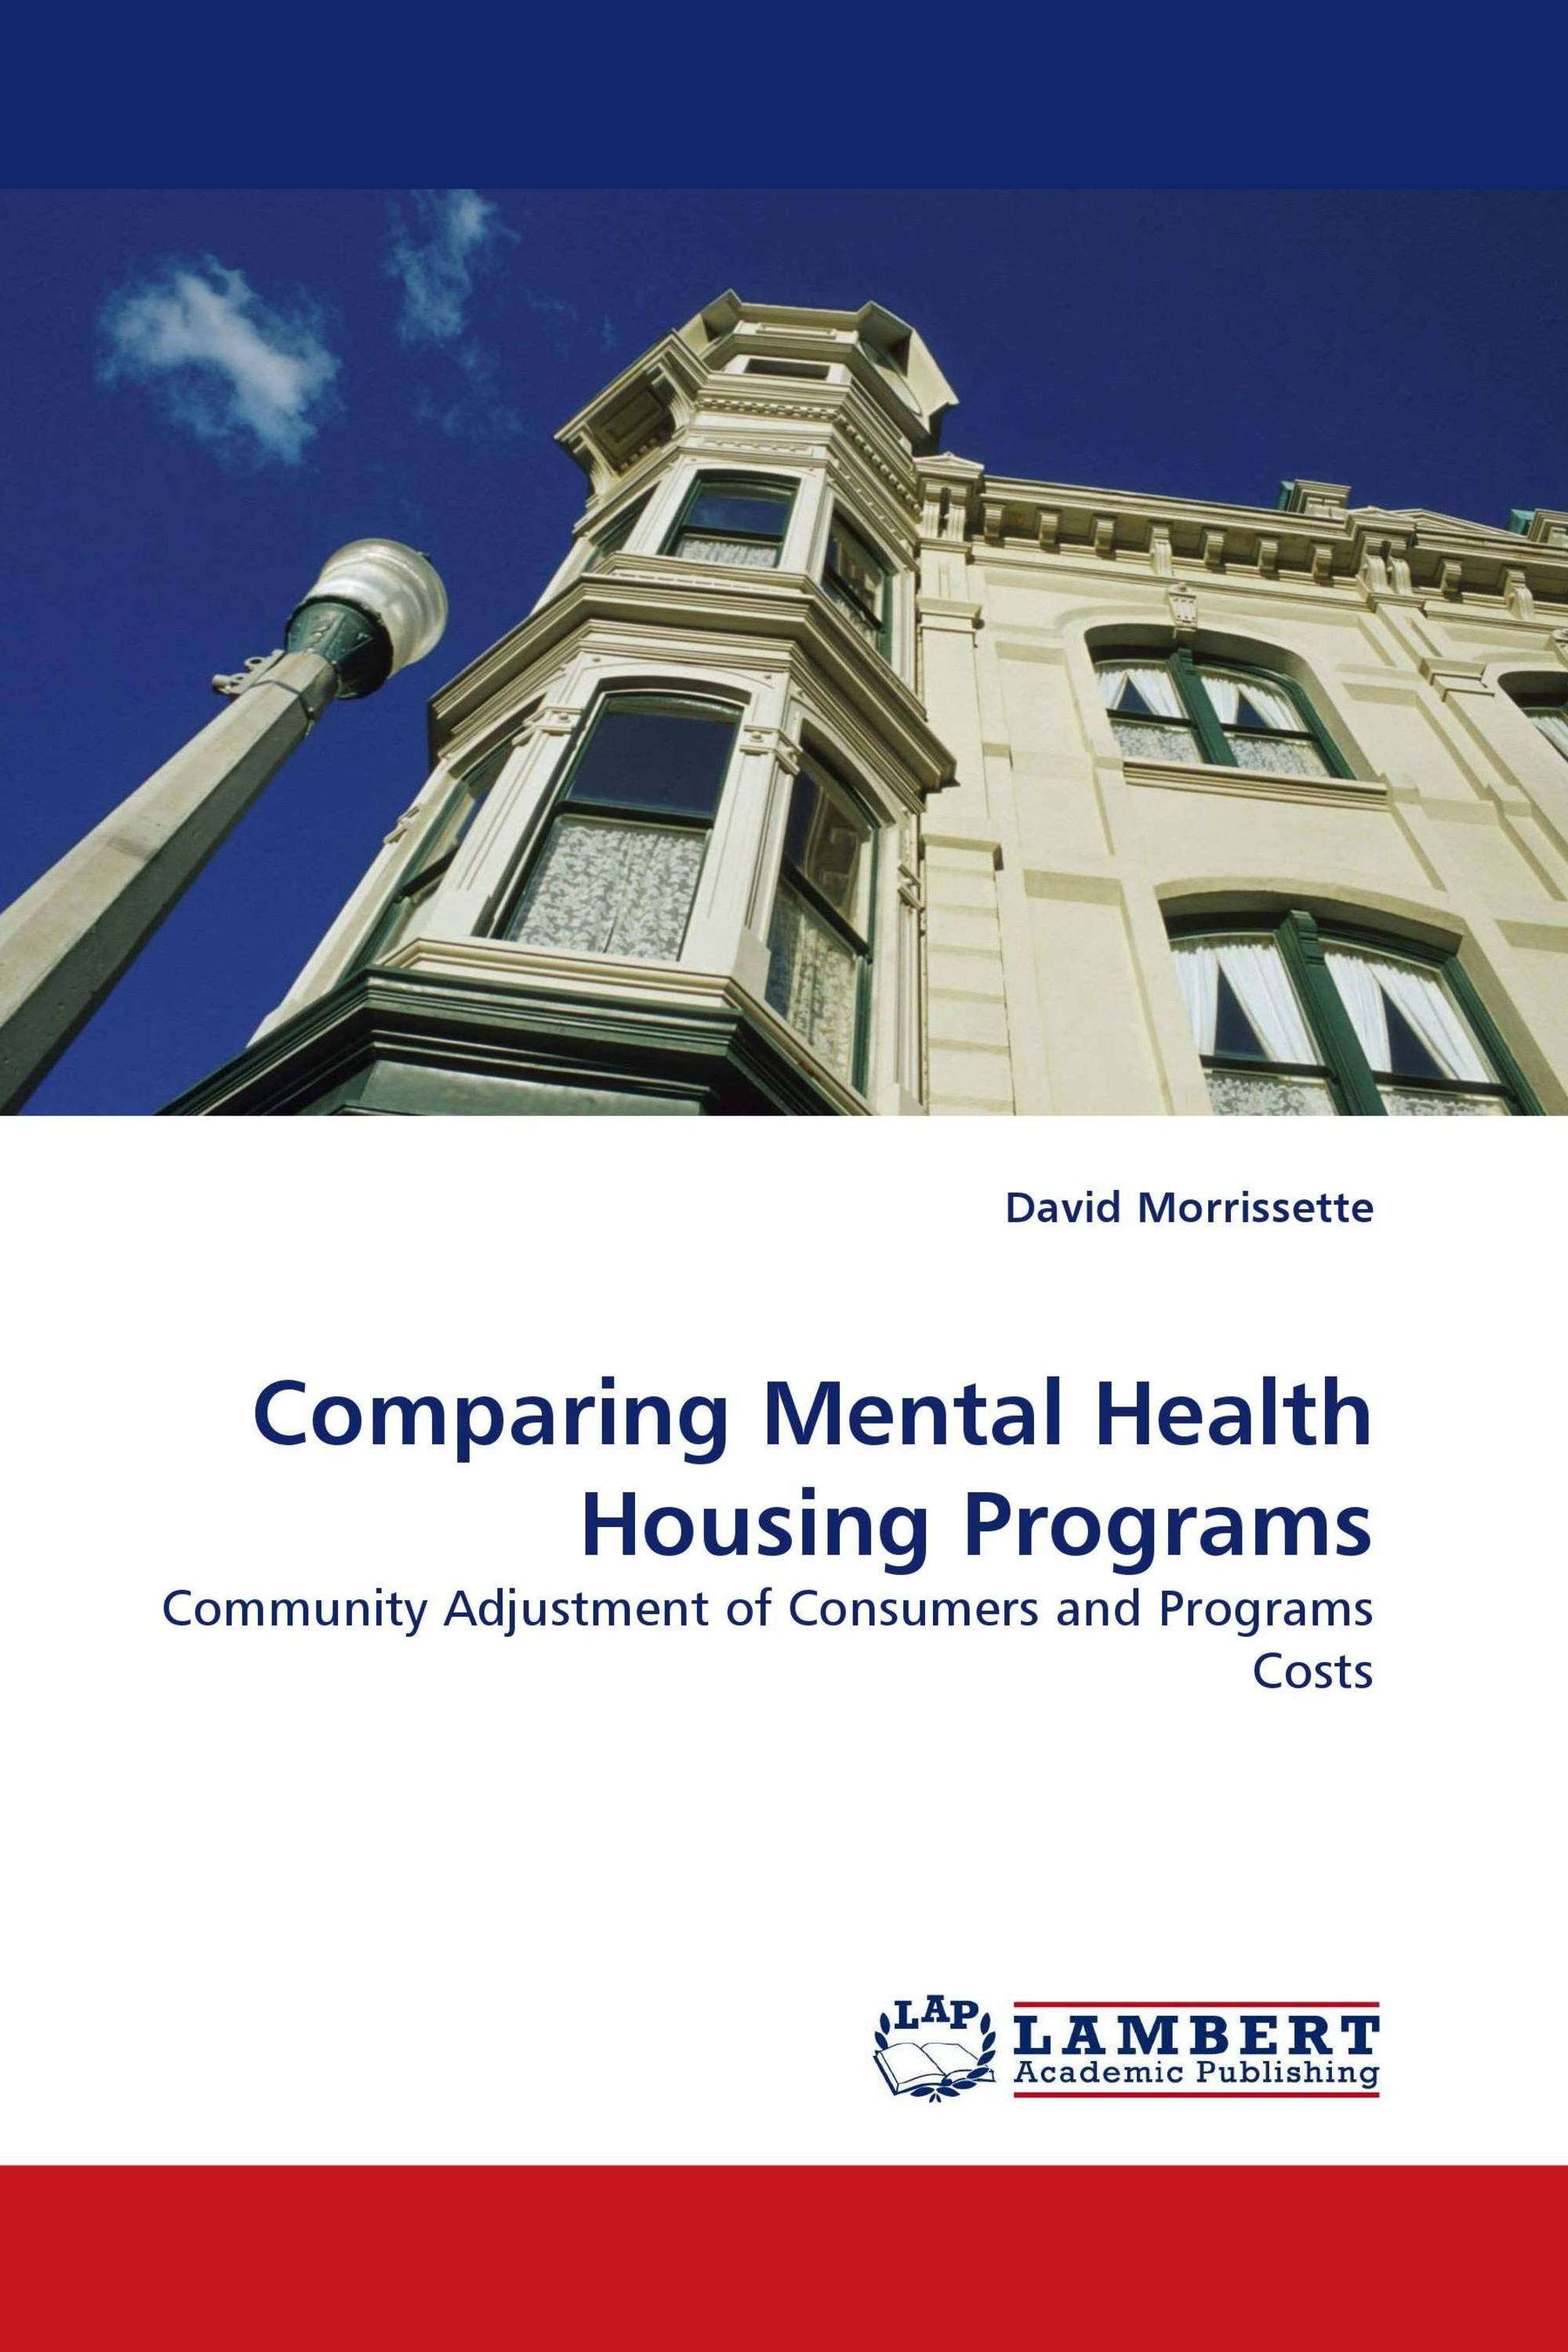 Comparing Mental Health Housing Programs